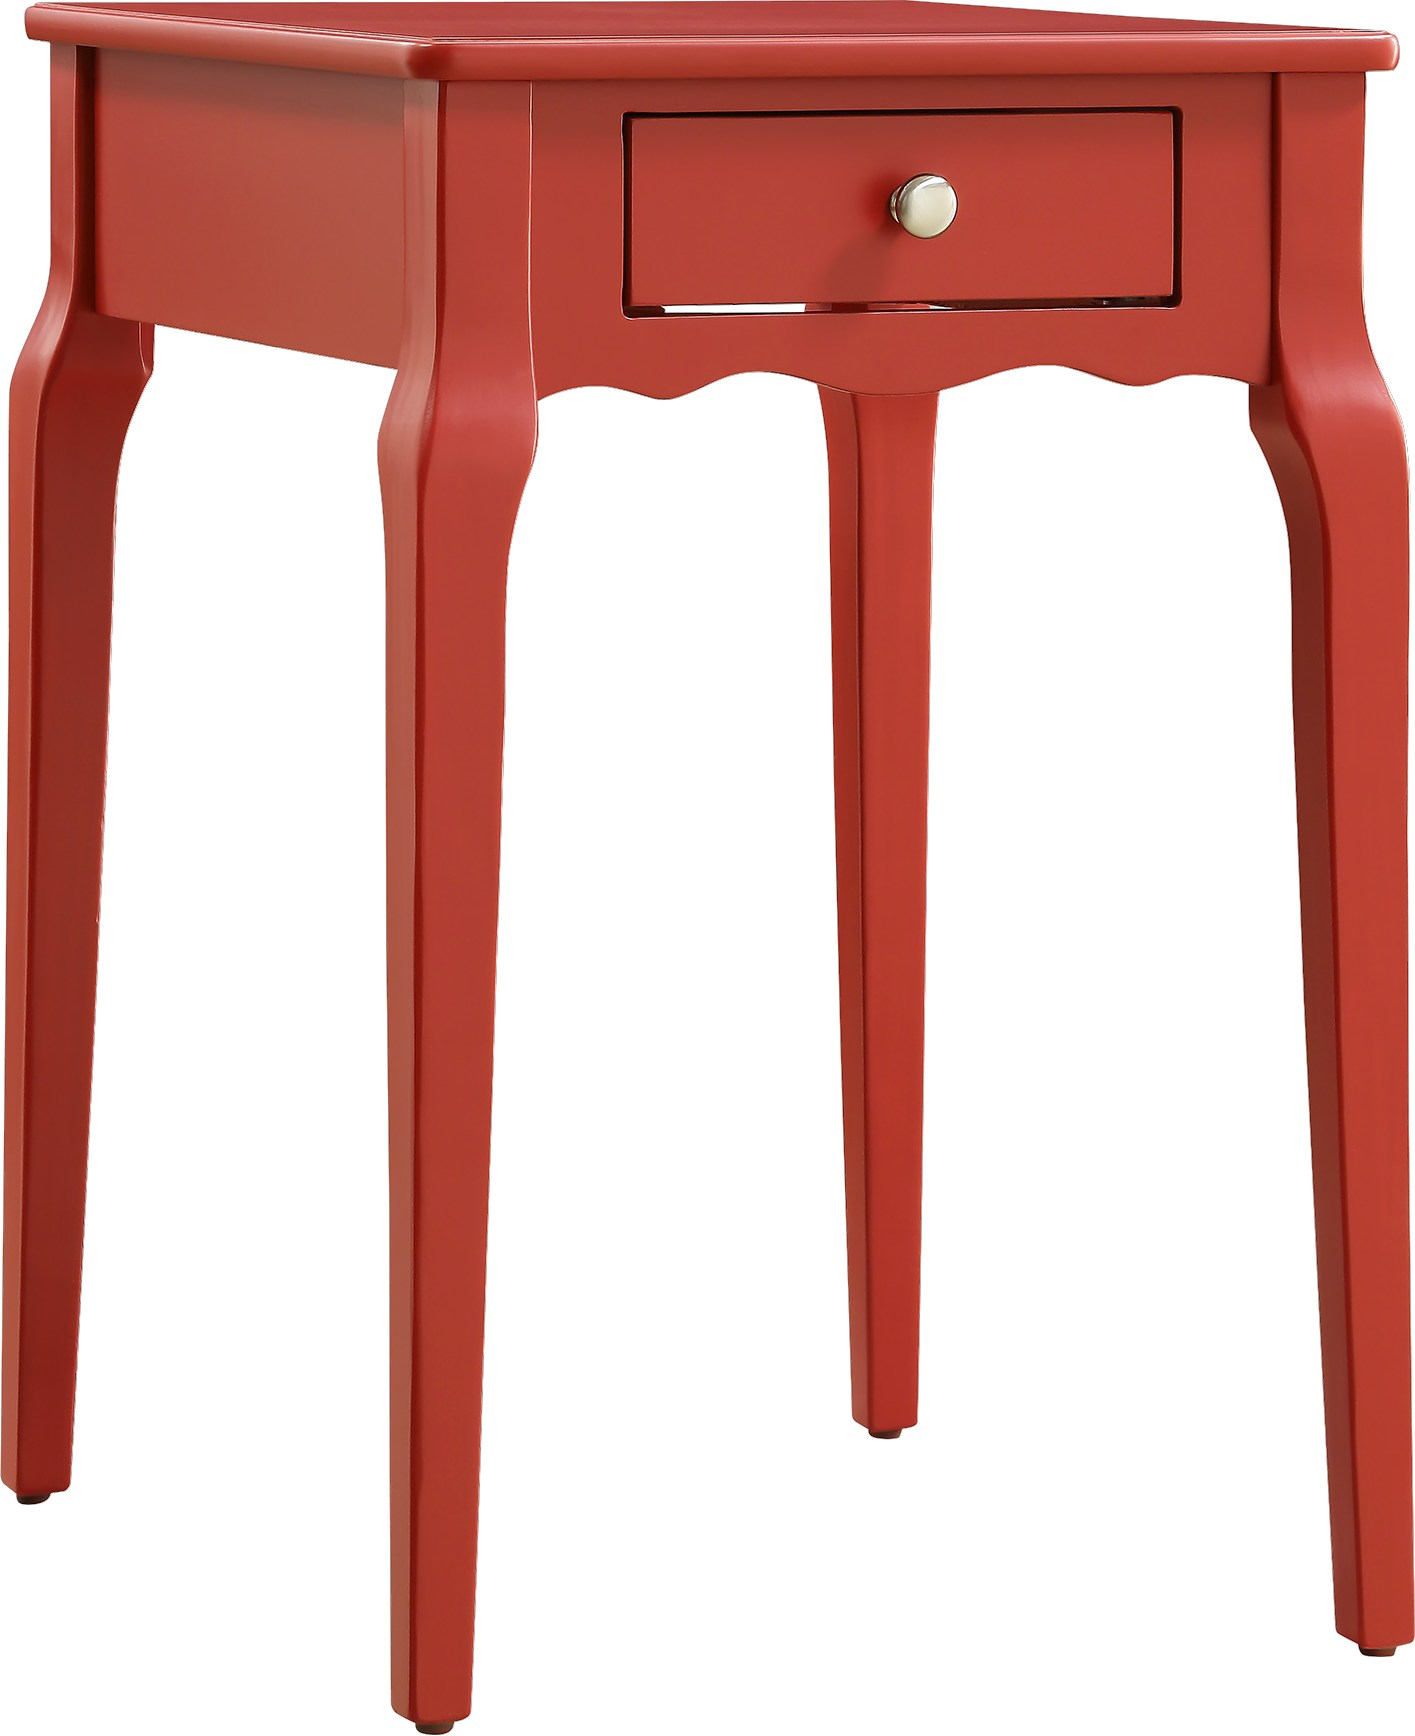 percel red accent table tables colors replacement furniture legs teak garden set distressed metal side drawer chest bunnings outdoor vinyl floor threshold wedding registry ideas